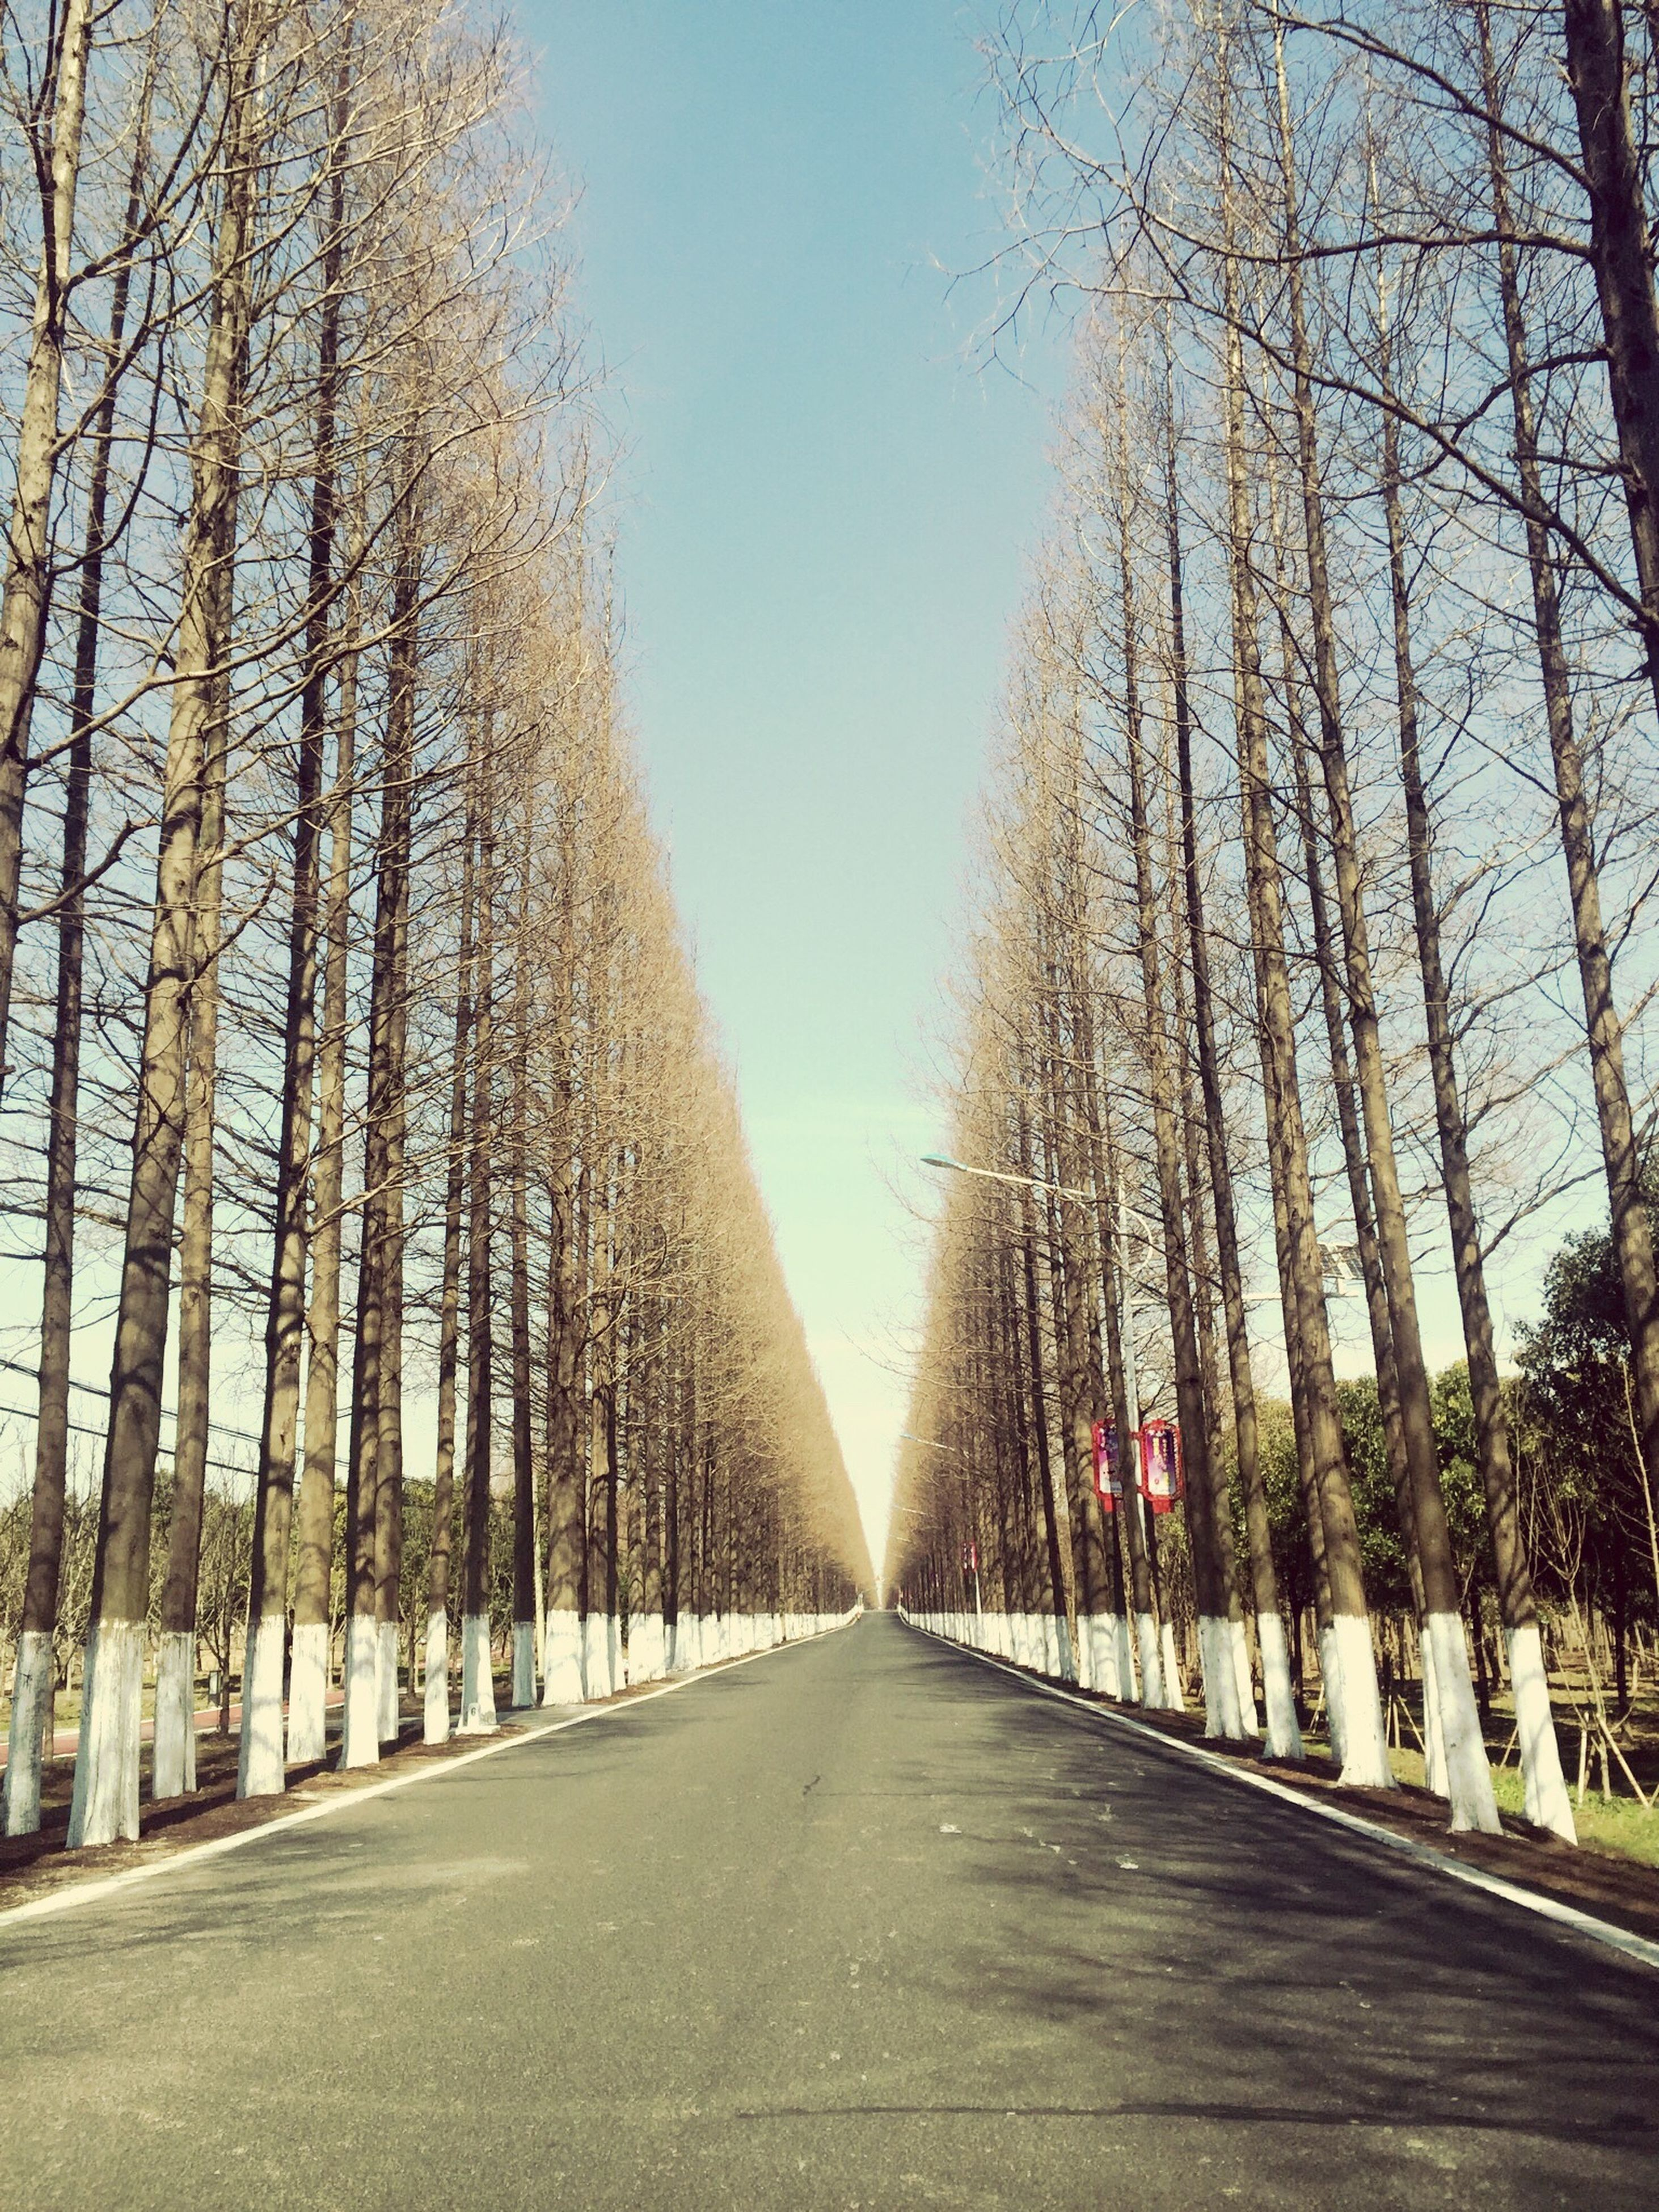 the way forward, tree, road, diminishing perspective, bare tree, day, clear sky, transportation, no people, outdoors, nature, sky, sunlight, tranquility, scenics, branch, beauty in nature